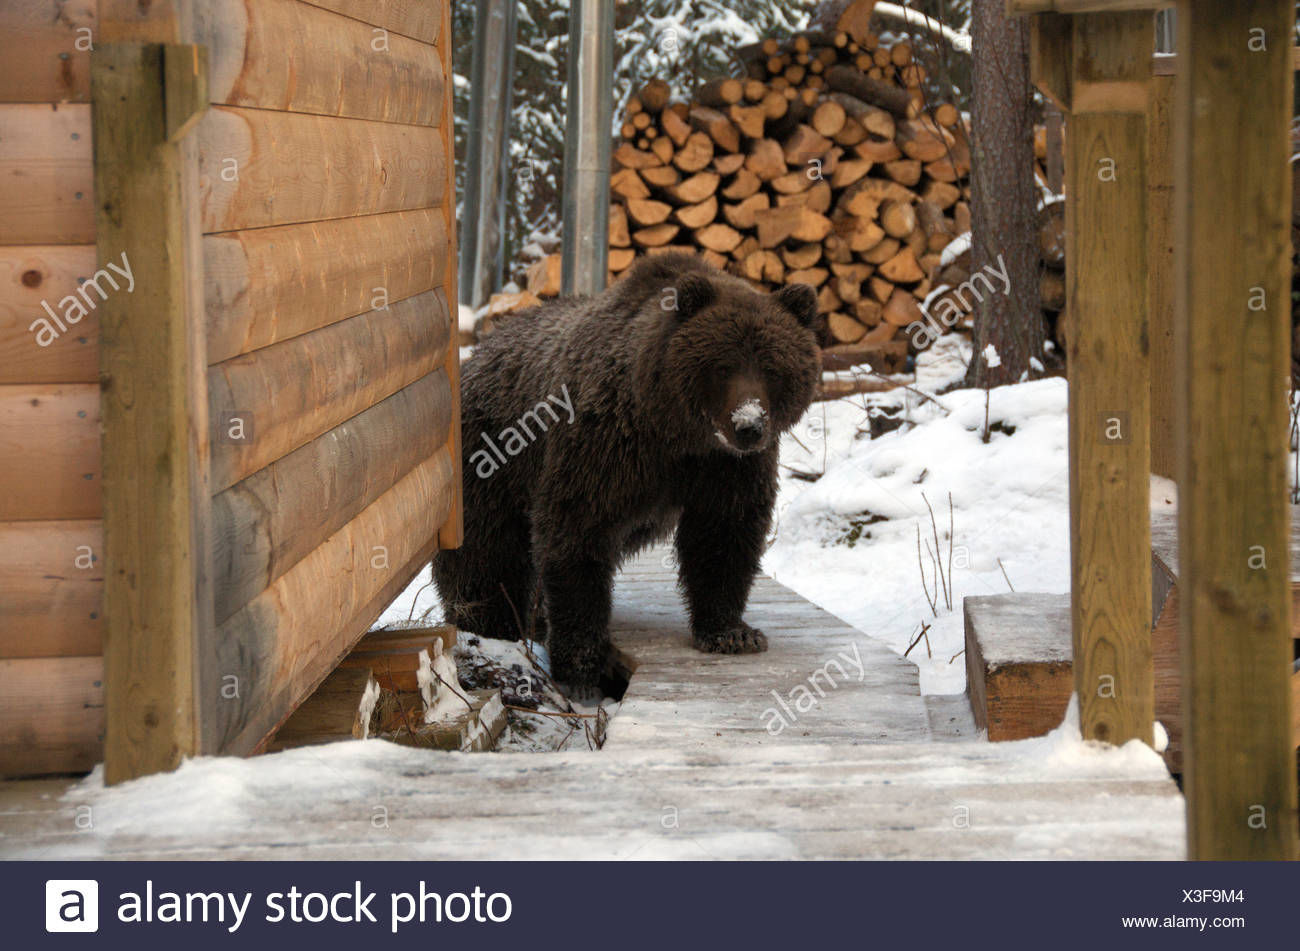 Grizzly Bear outside log cabin by Fishing Branch River, Ni'iinlii Njik Ecological Reserve, Yukon Territory, Canada - Stock Image